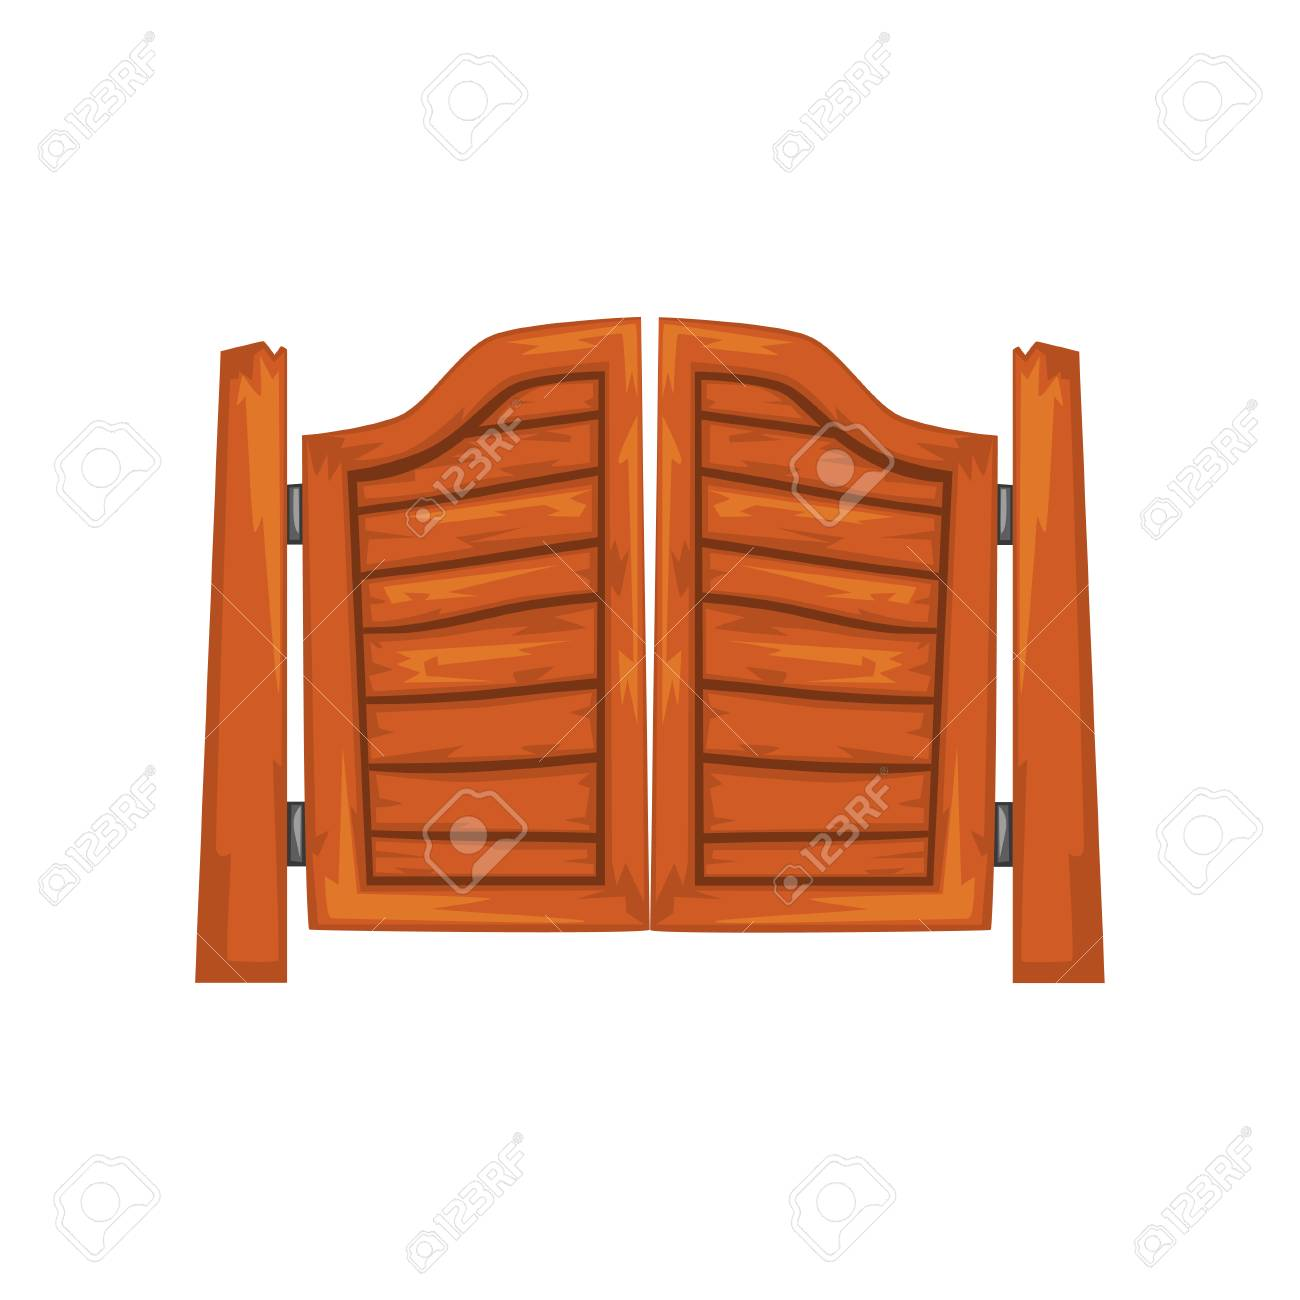 Old western swinging saloon doors vector Illustration on a white background - 101440120